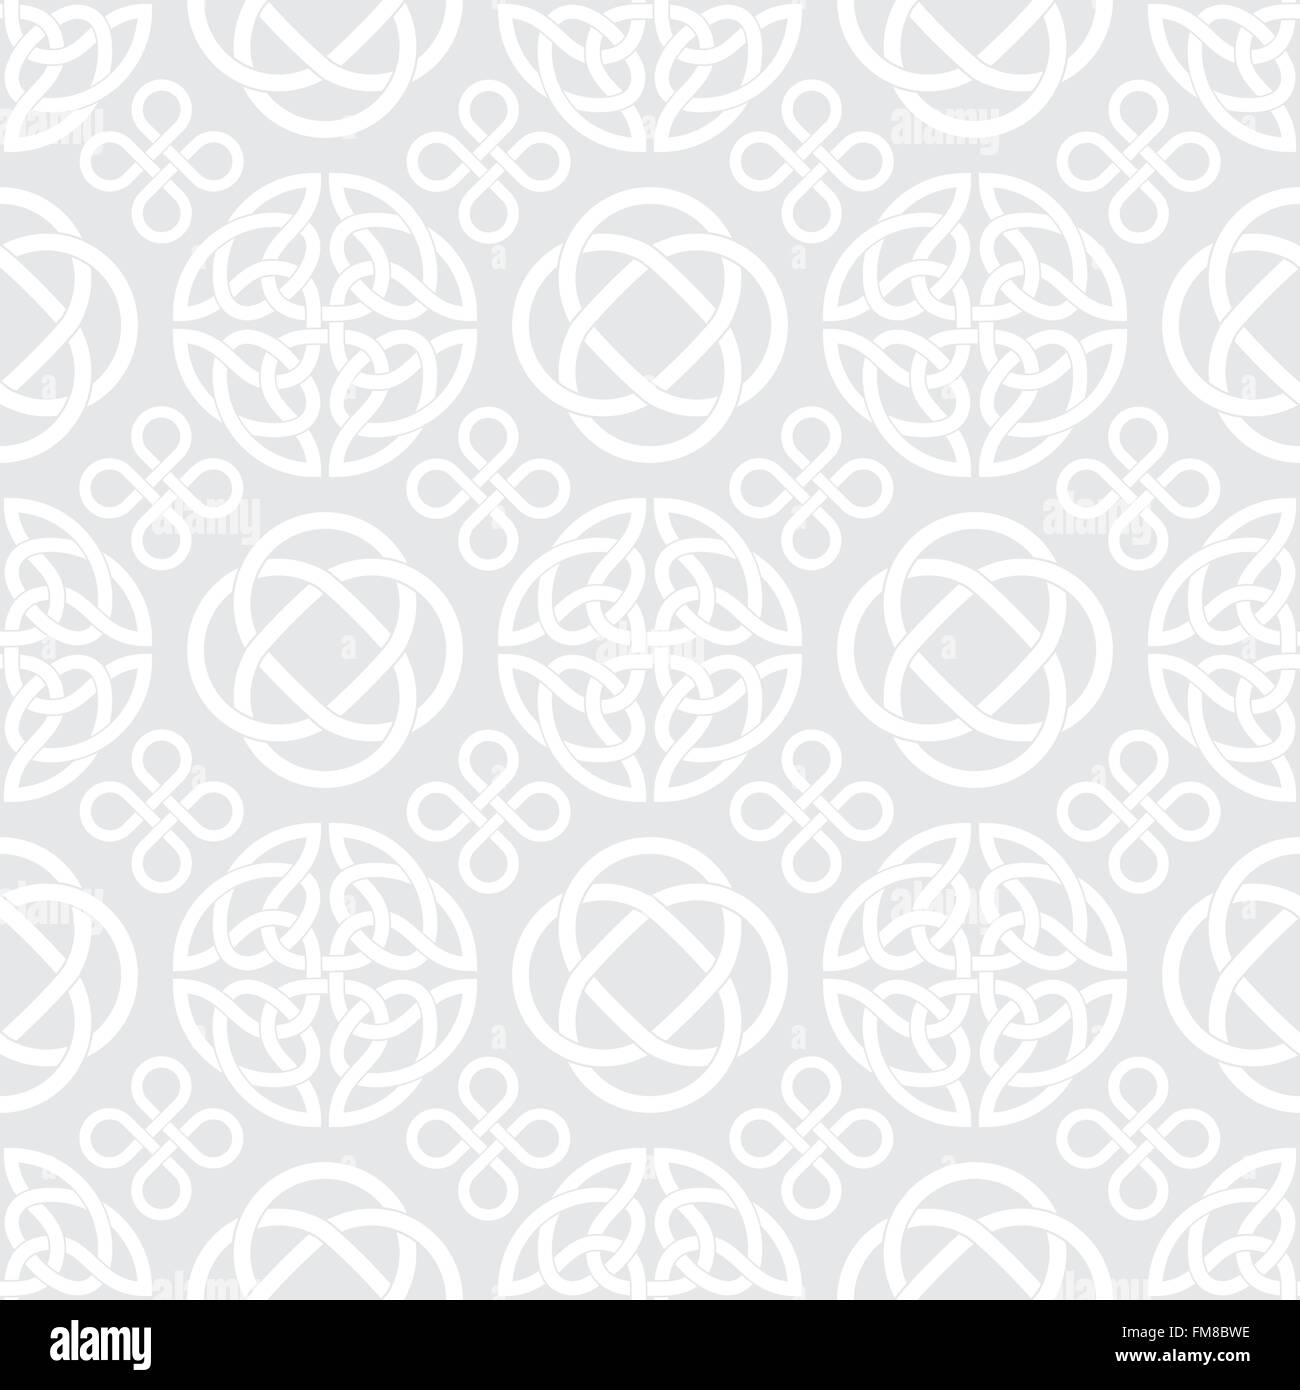 Seamless Pattern With Celtic Knot Symbols White On Light Grey Stock